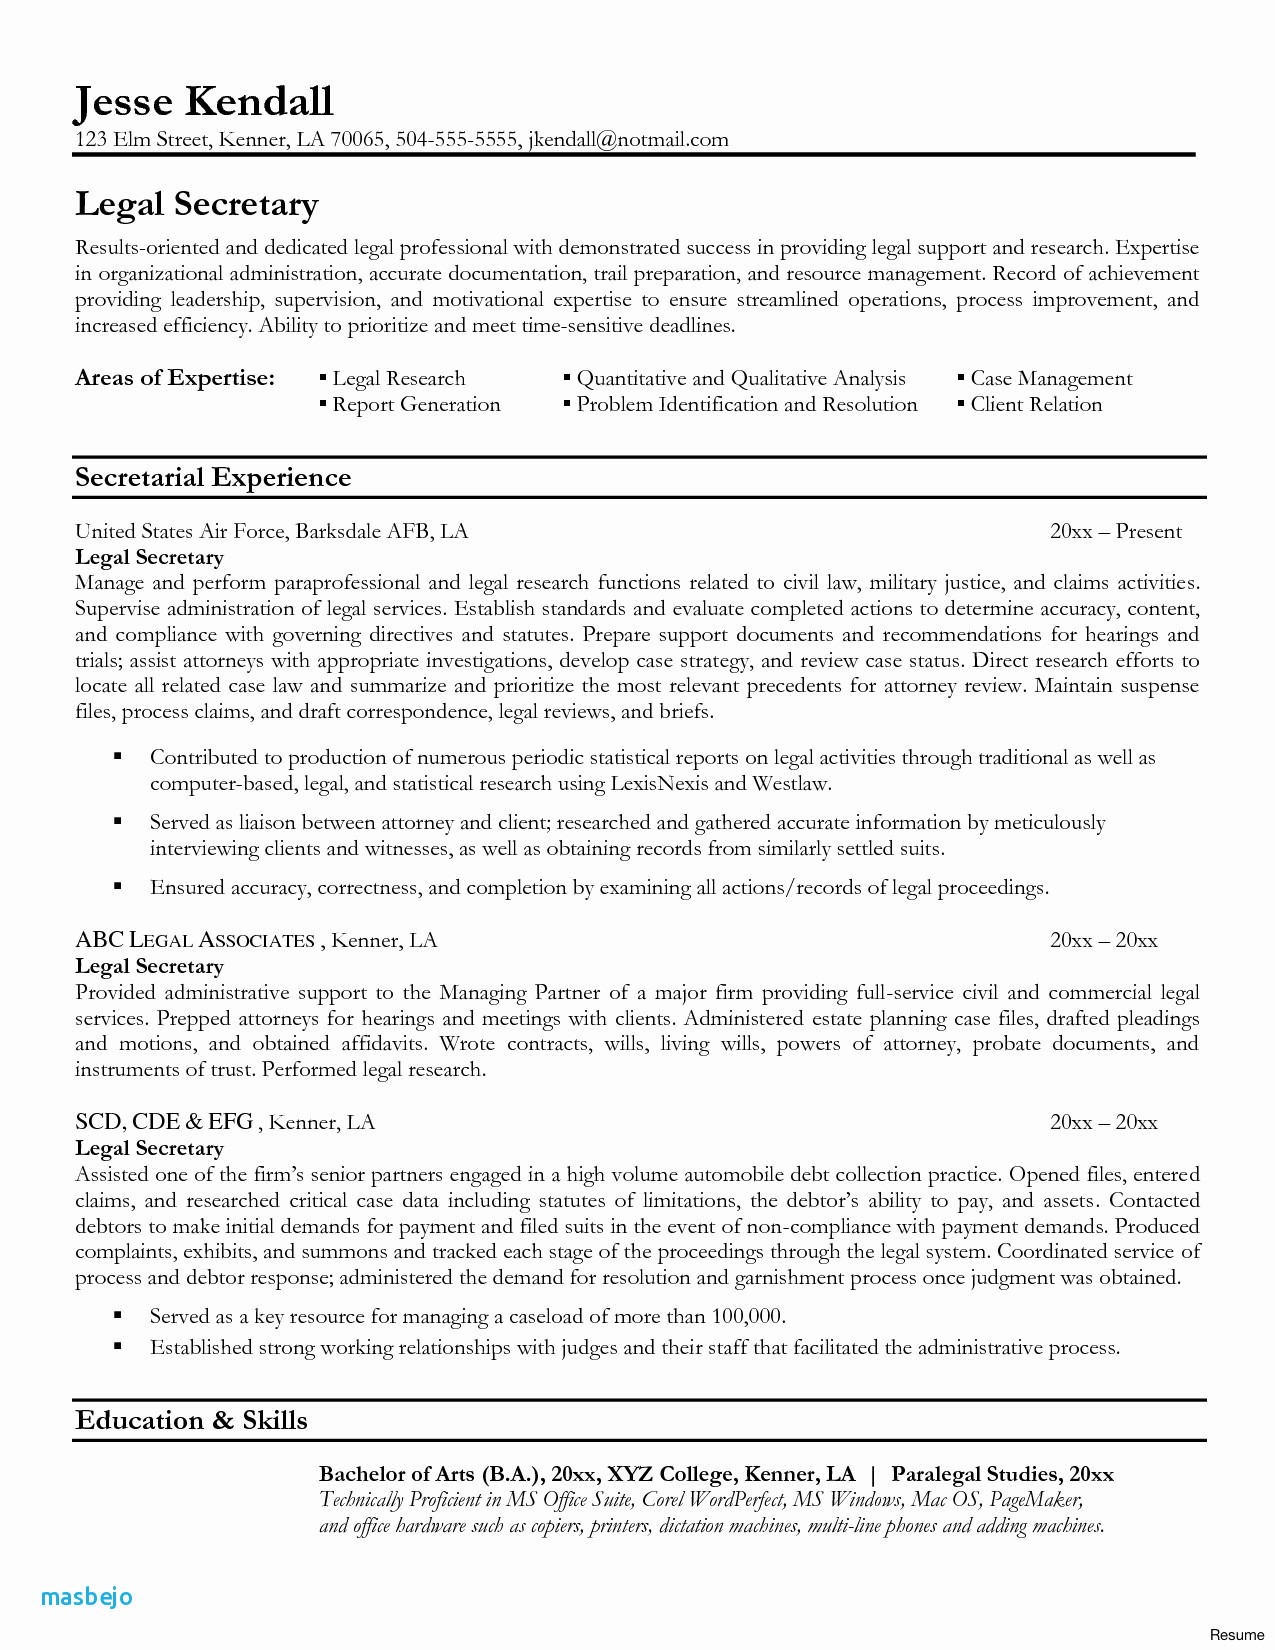 lawyer resume template example-Legal Resume Examples Law Student Resume Template Best Resume Examples 0d 7-l